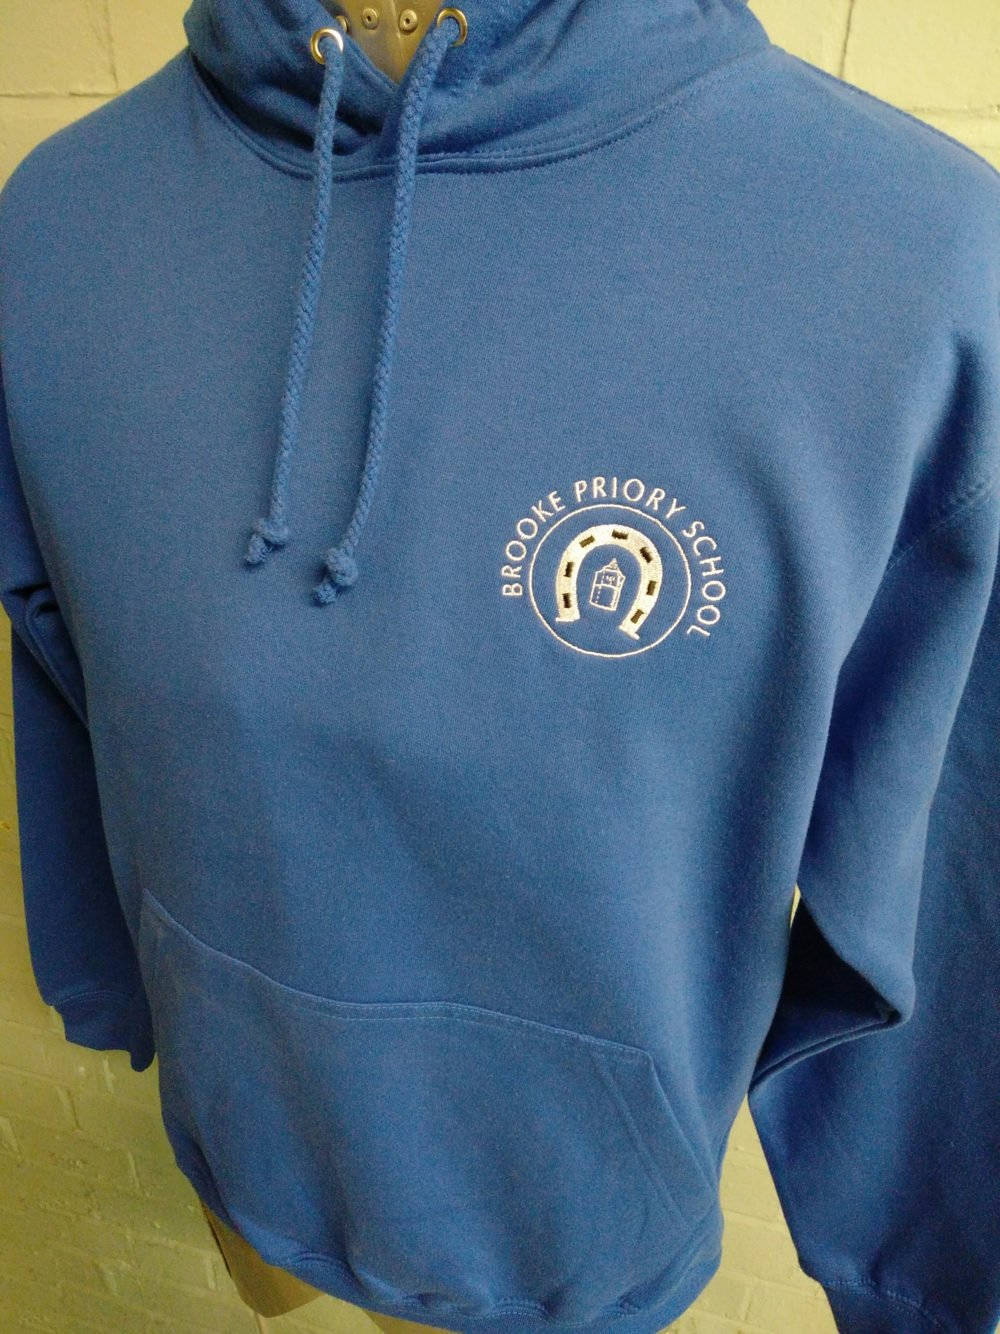 Brooke Priory 2017 Leavers Hoodies